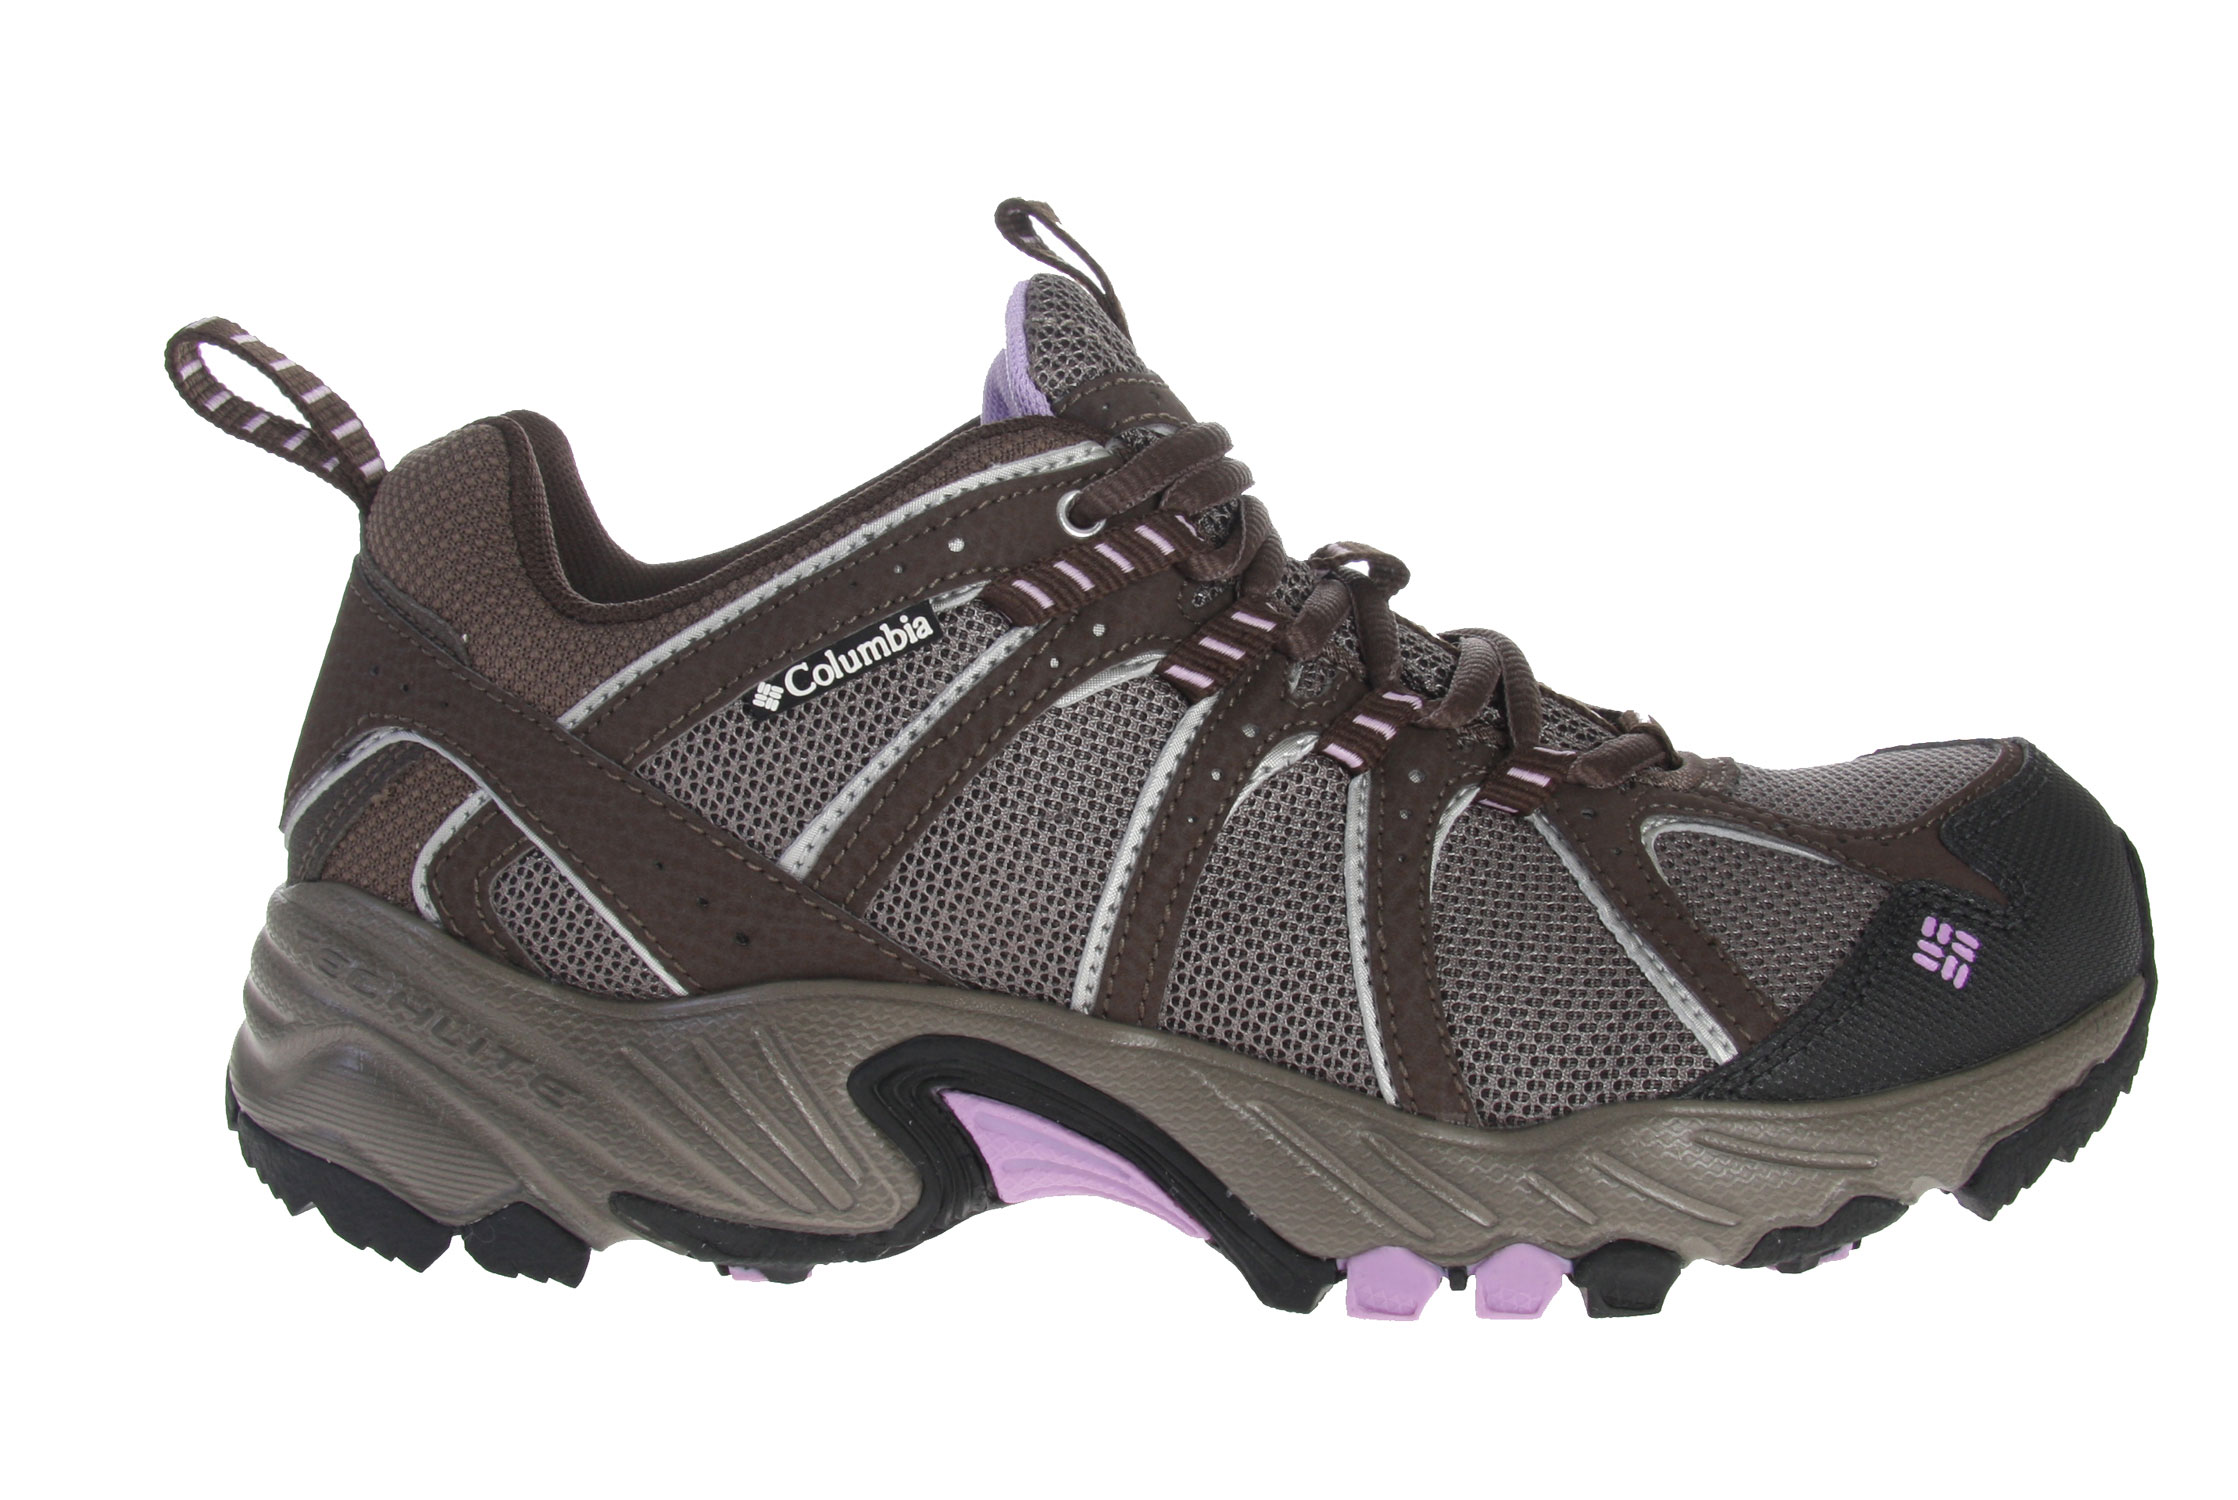 Camp and Hike A fantastic value, the Kaibab is the go-anywhere, do-anything answer to your everyday adventure footwear needs.This shoe is flexible, light and well-supported - perfect for trail running and hiking but low-profile enough for general everyday use. The breathable mesh upper helps you stay cool when you're on the move and a gusseted tongue keeps out unwanted debris. A women's-specific last accommodates a narrower foot for fantastic fit. Ample padding protects and cushions your feet while a rugged non-marking outsole with a trail-specific design provides stability as you move over uneven surfaces. Key Features of the Columbia Kaibab Hiking Shoes: Breathable mesh upper supported by light and flexible overlays. Gusseted tongue to keep out unwanted debris Molded rubberized EVA with nylex top cover Compression molded EVA Nylon shank Non-marking Omni-Grip rubber compound with a rugged trail design Weight: Size 9, 1/2 pair = 12.6 oz/360g - $48.95